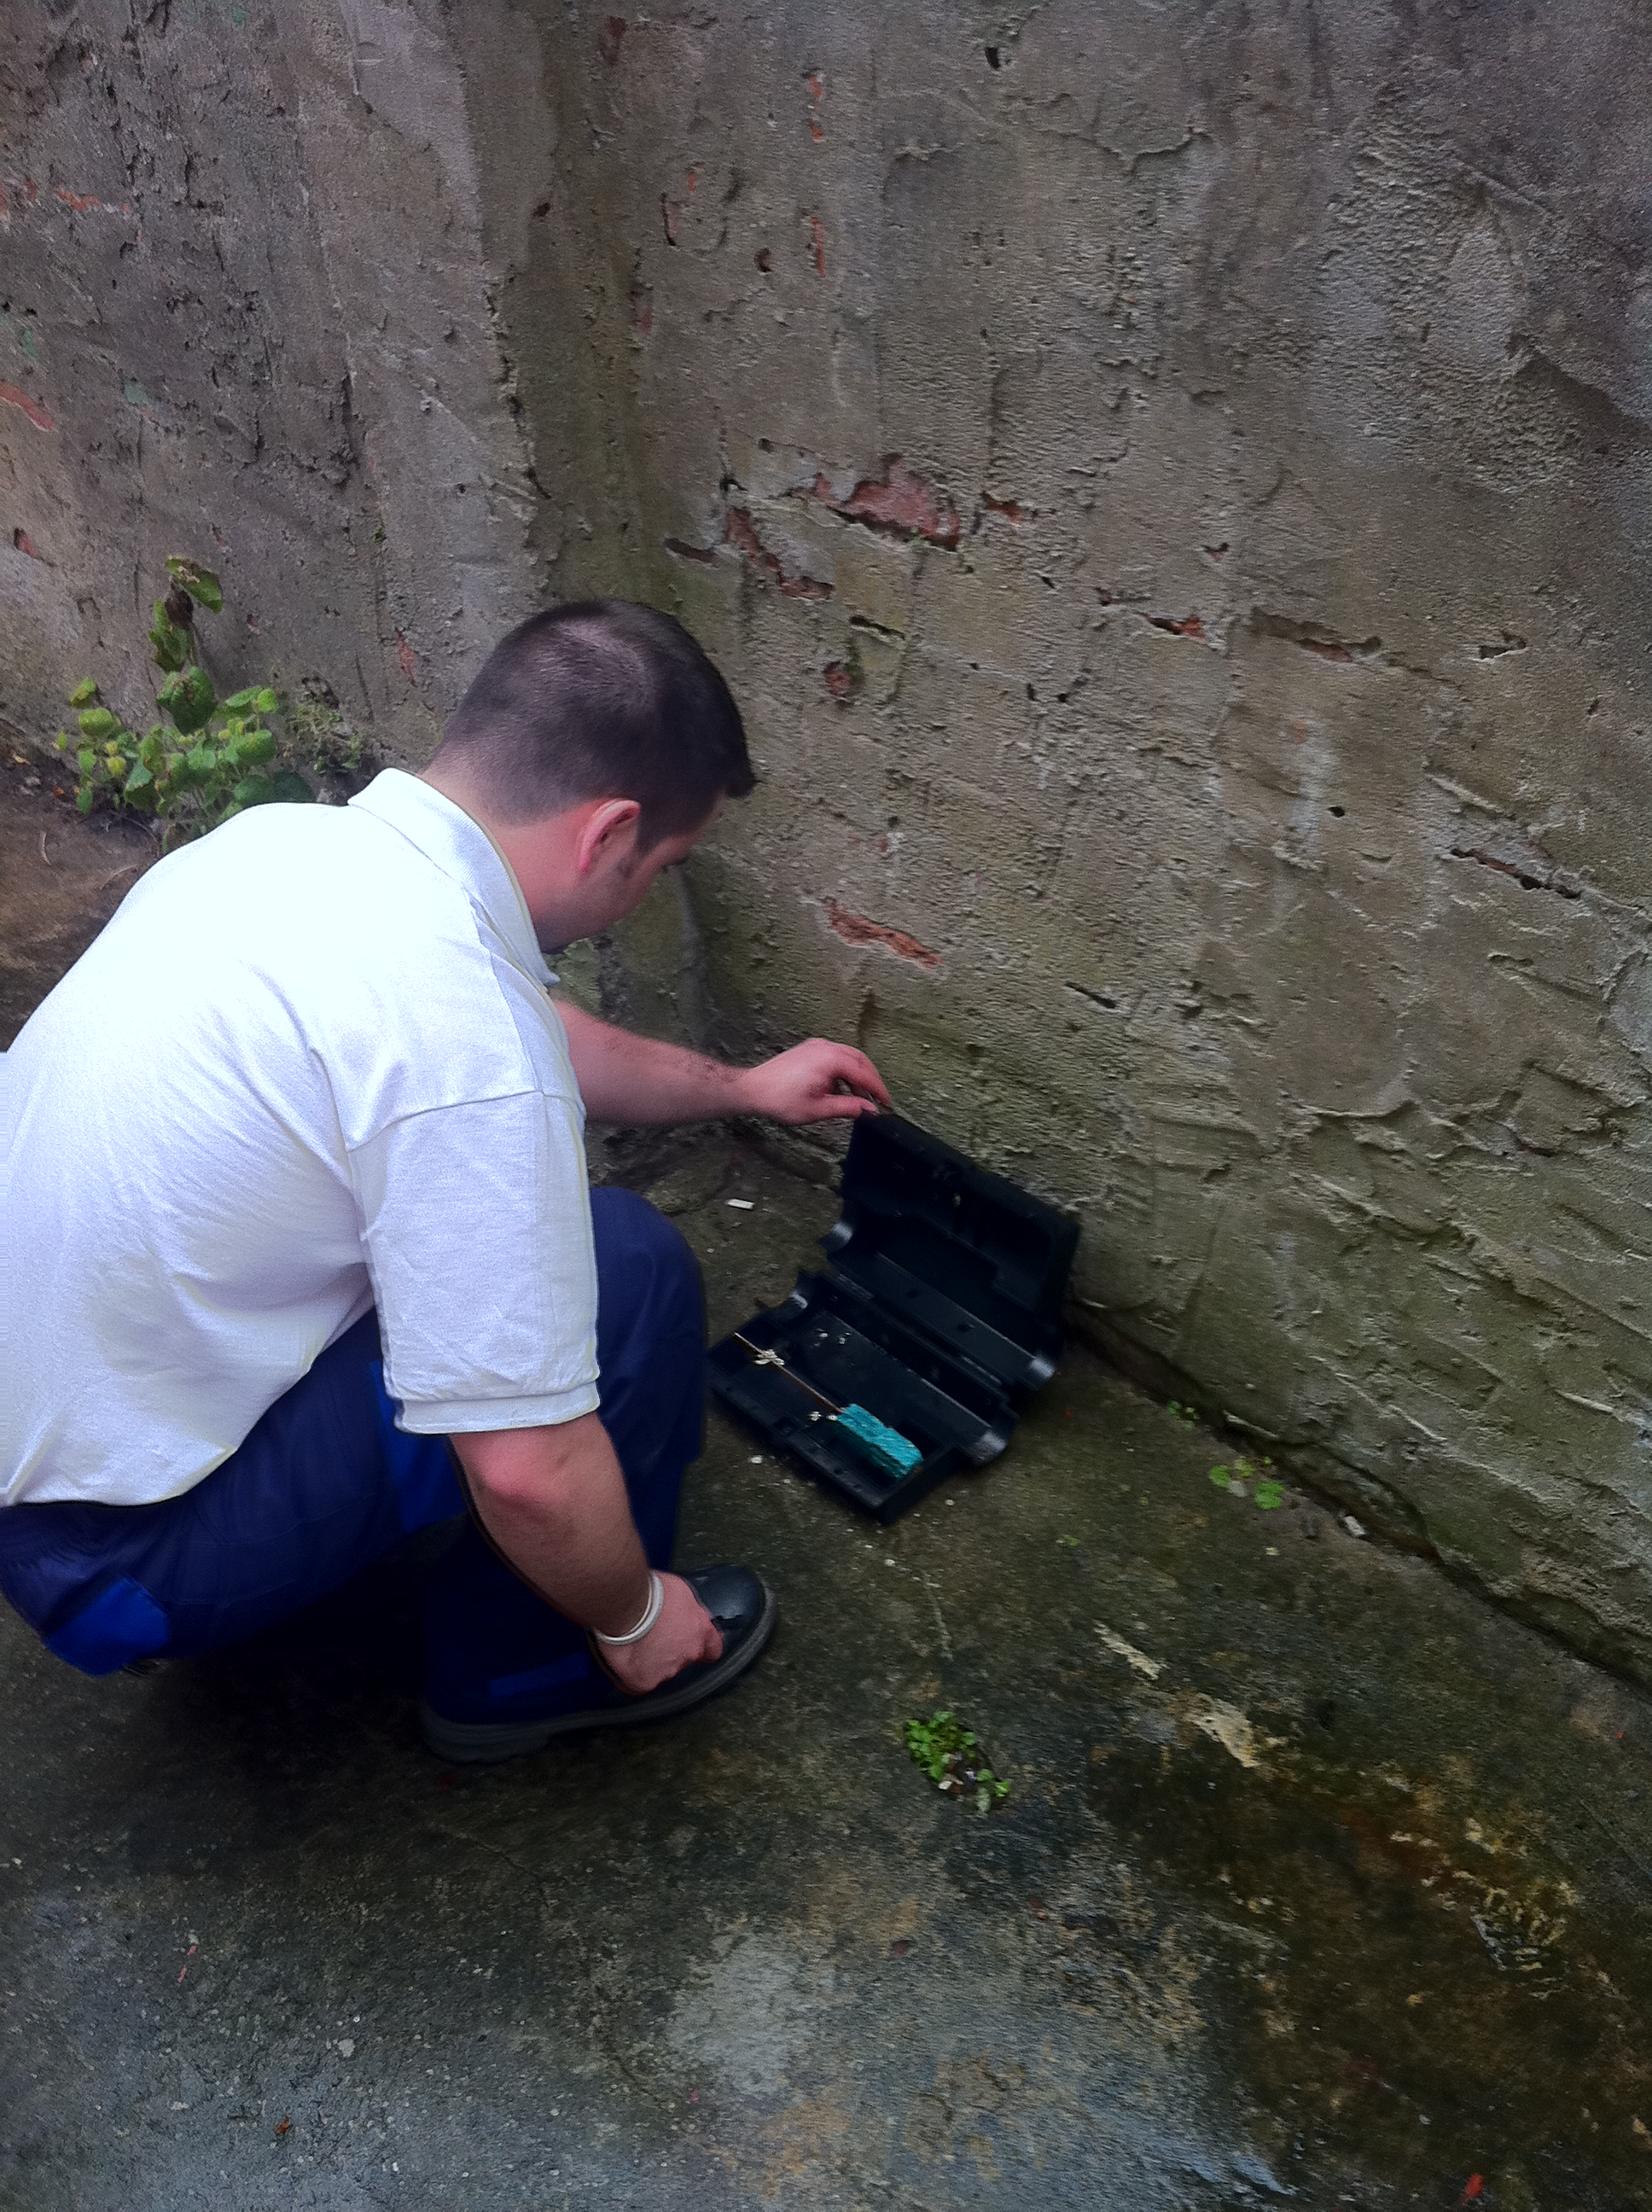 Rodent monitoring